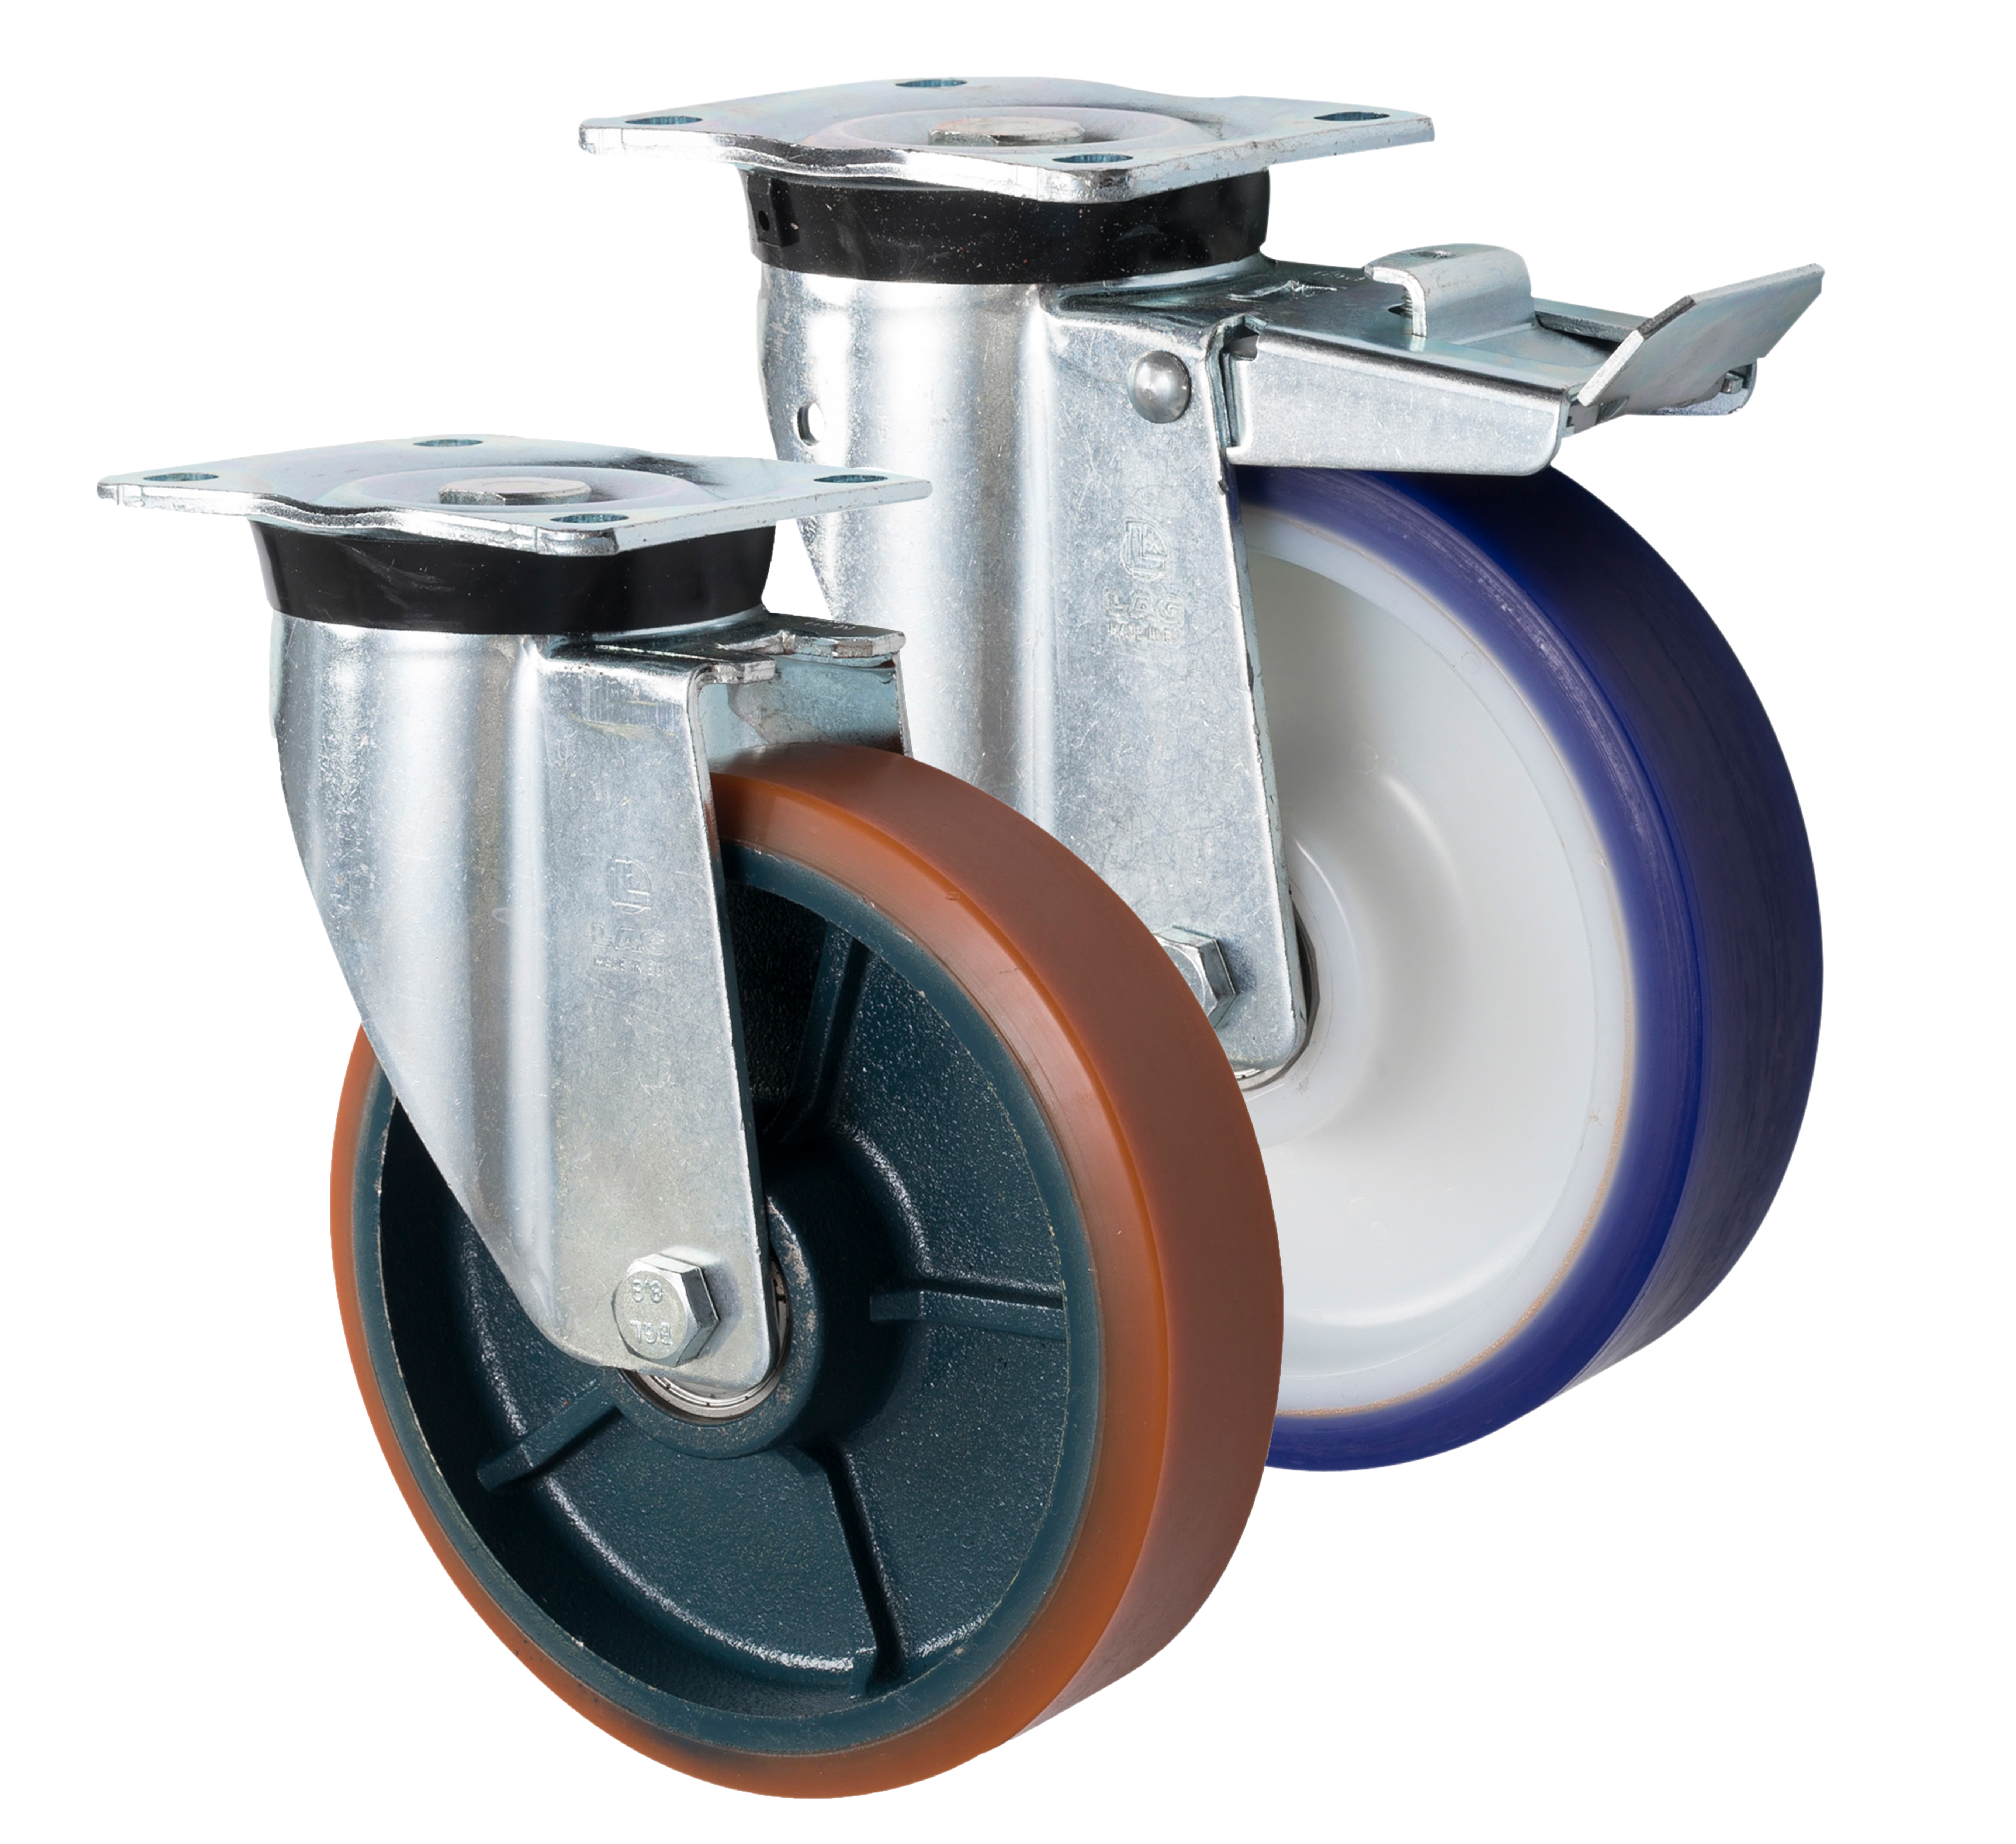 LAG Heavy Duty Castors P60 Series